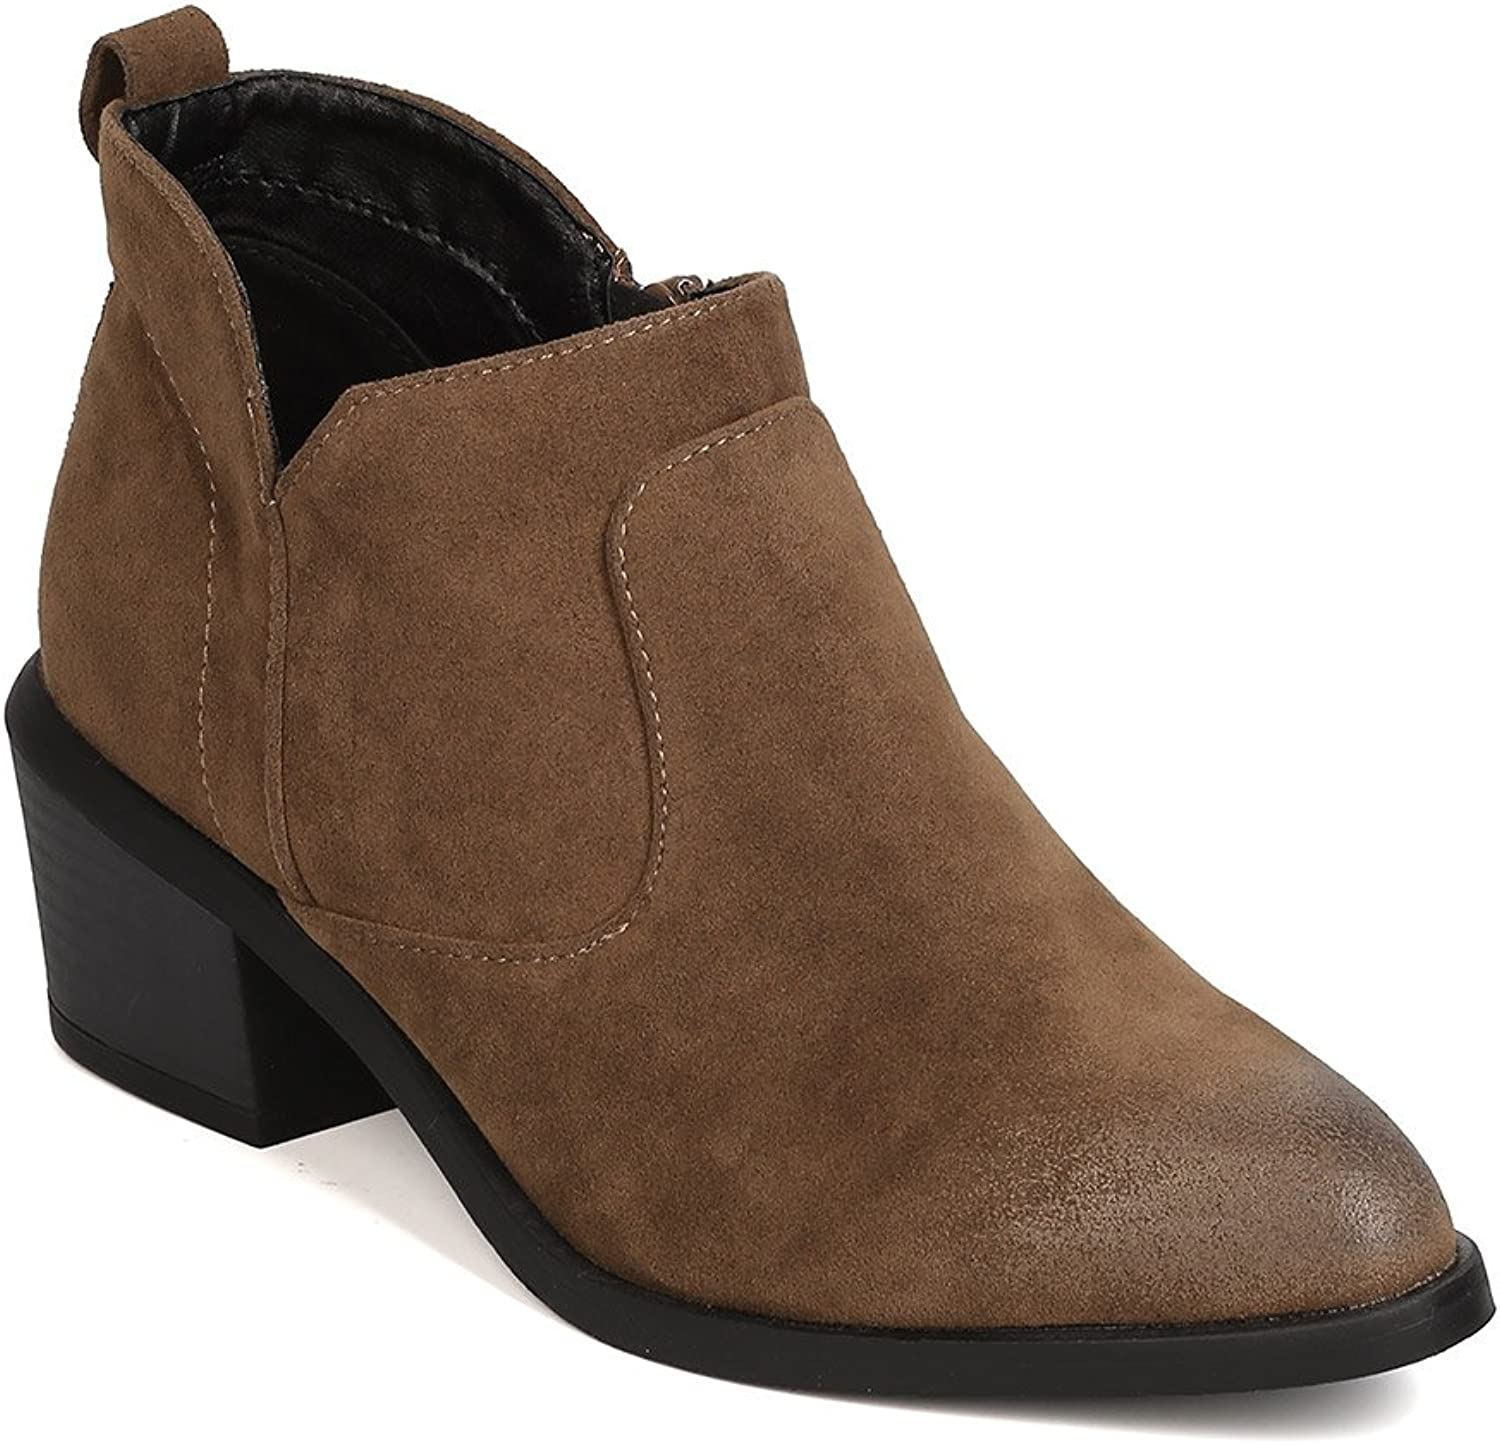 Qupid GK25 Women Faux Suede Pointy Toe Stacked Chunky Heel Bootie - Khaki